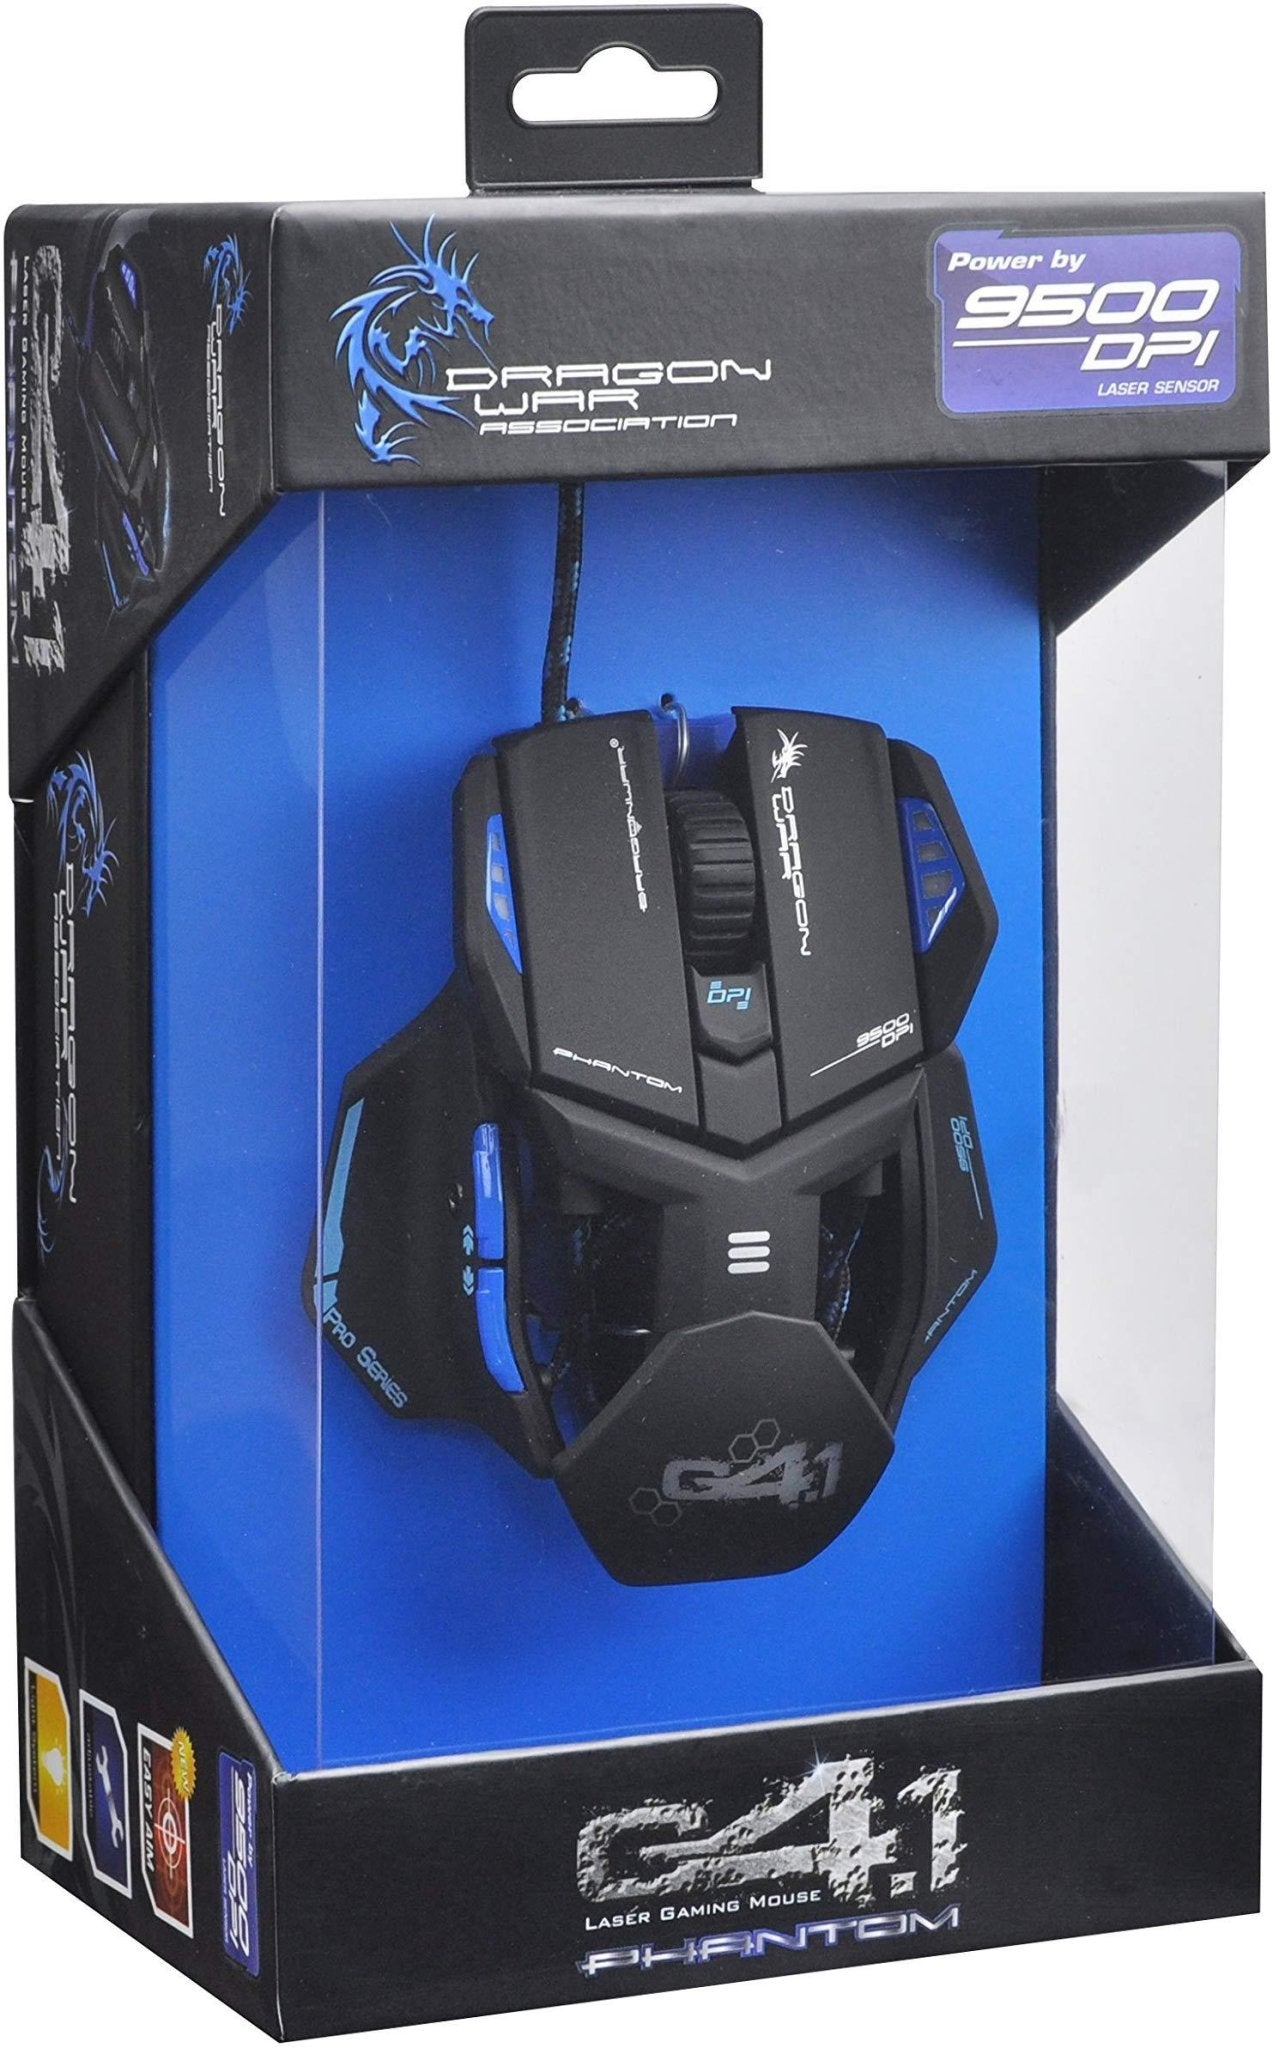 Dragon War ELE-G4.1 Phantom Blue Gaming Mouse - Wired